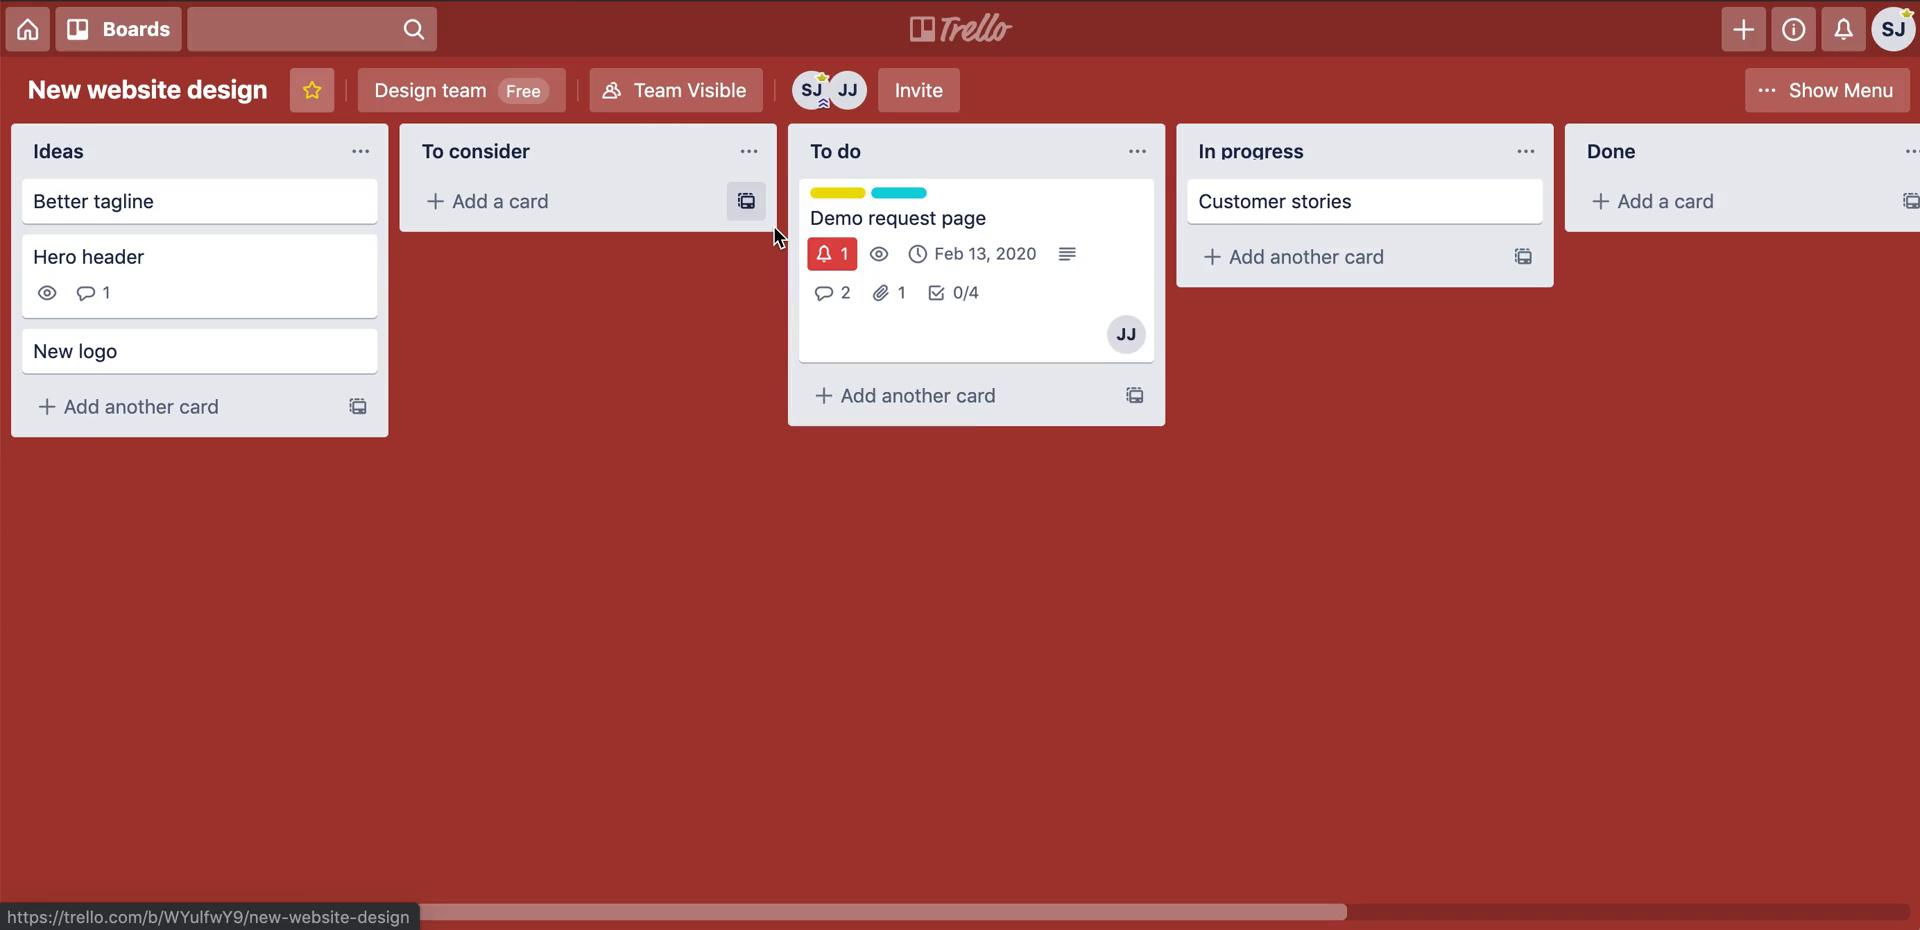 Activity feed on Trello video screenshot